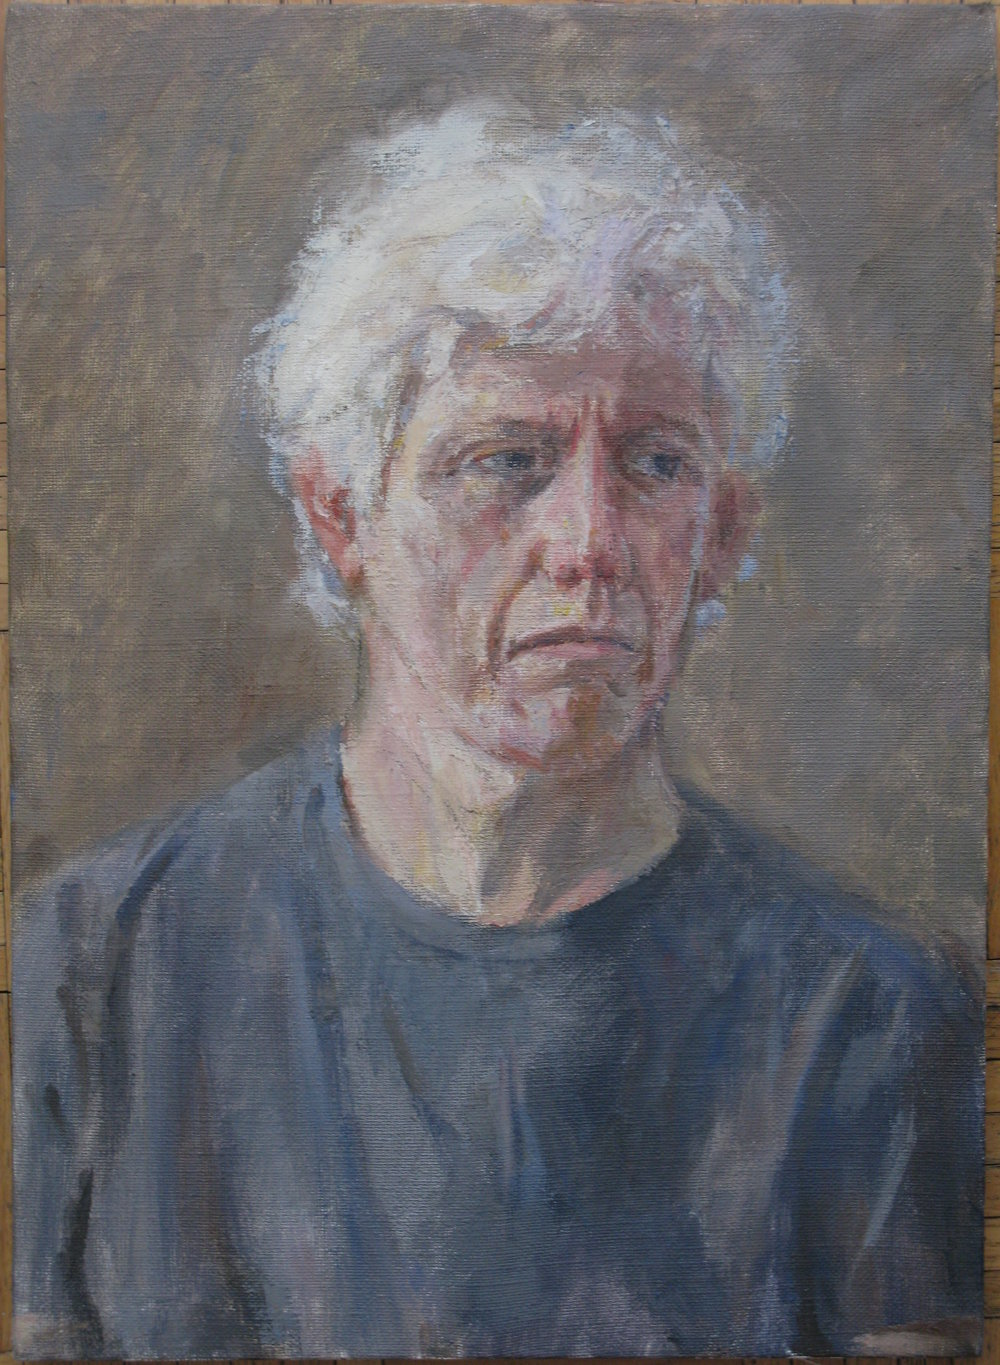 "Robert Bunkin, Painter, 22"" x 16"", oil on linen"